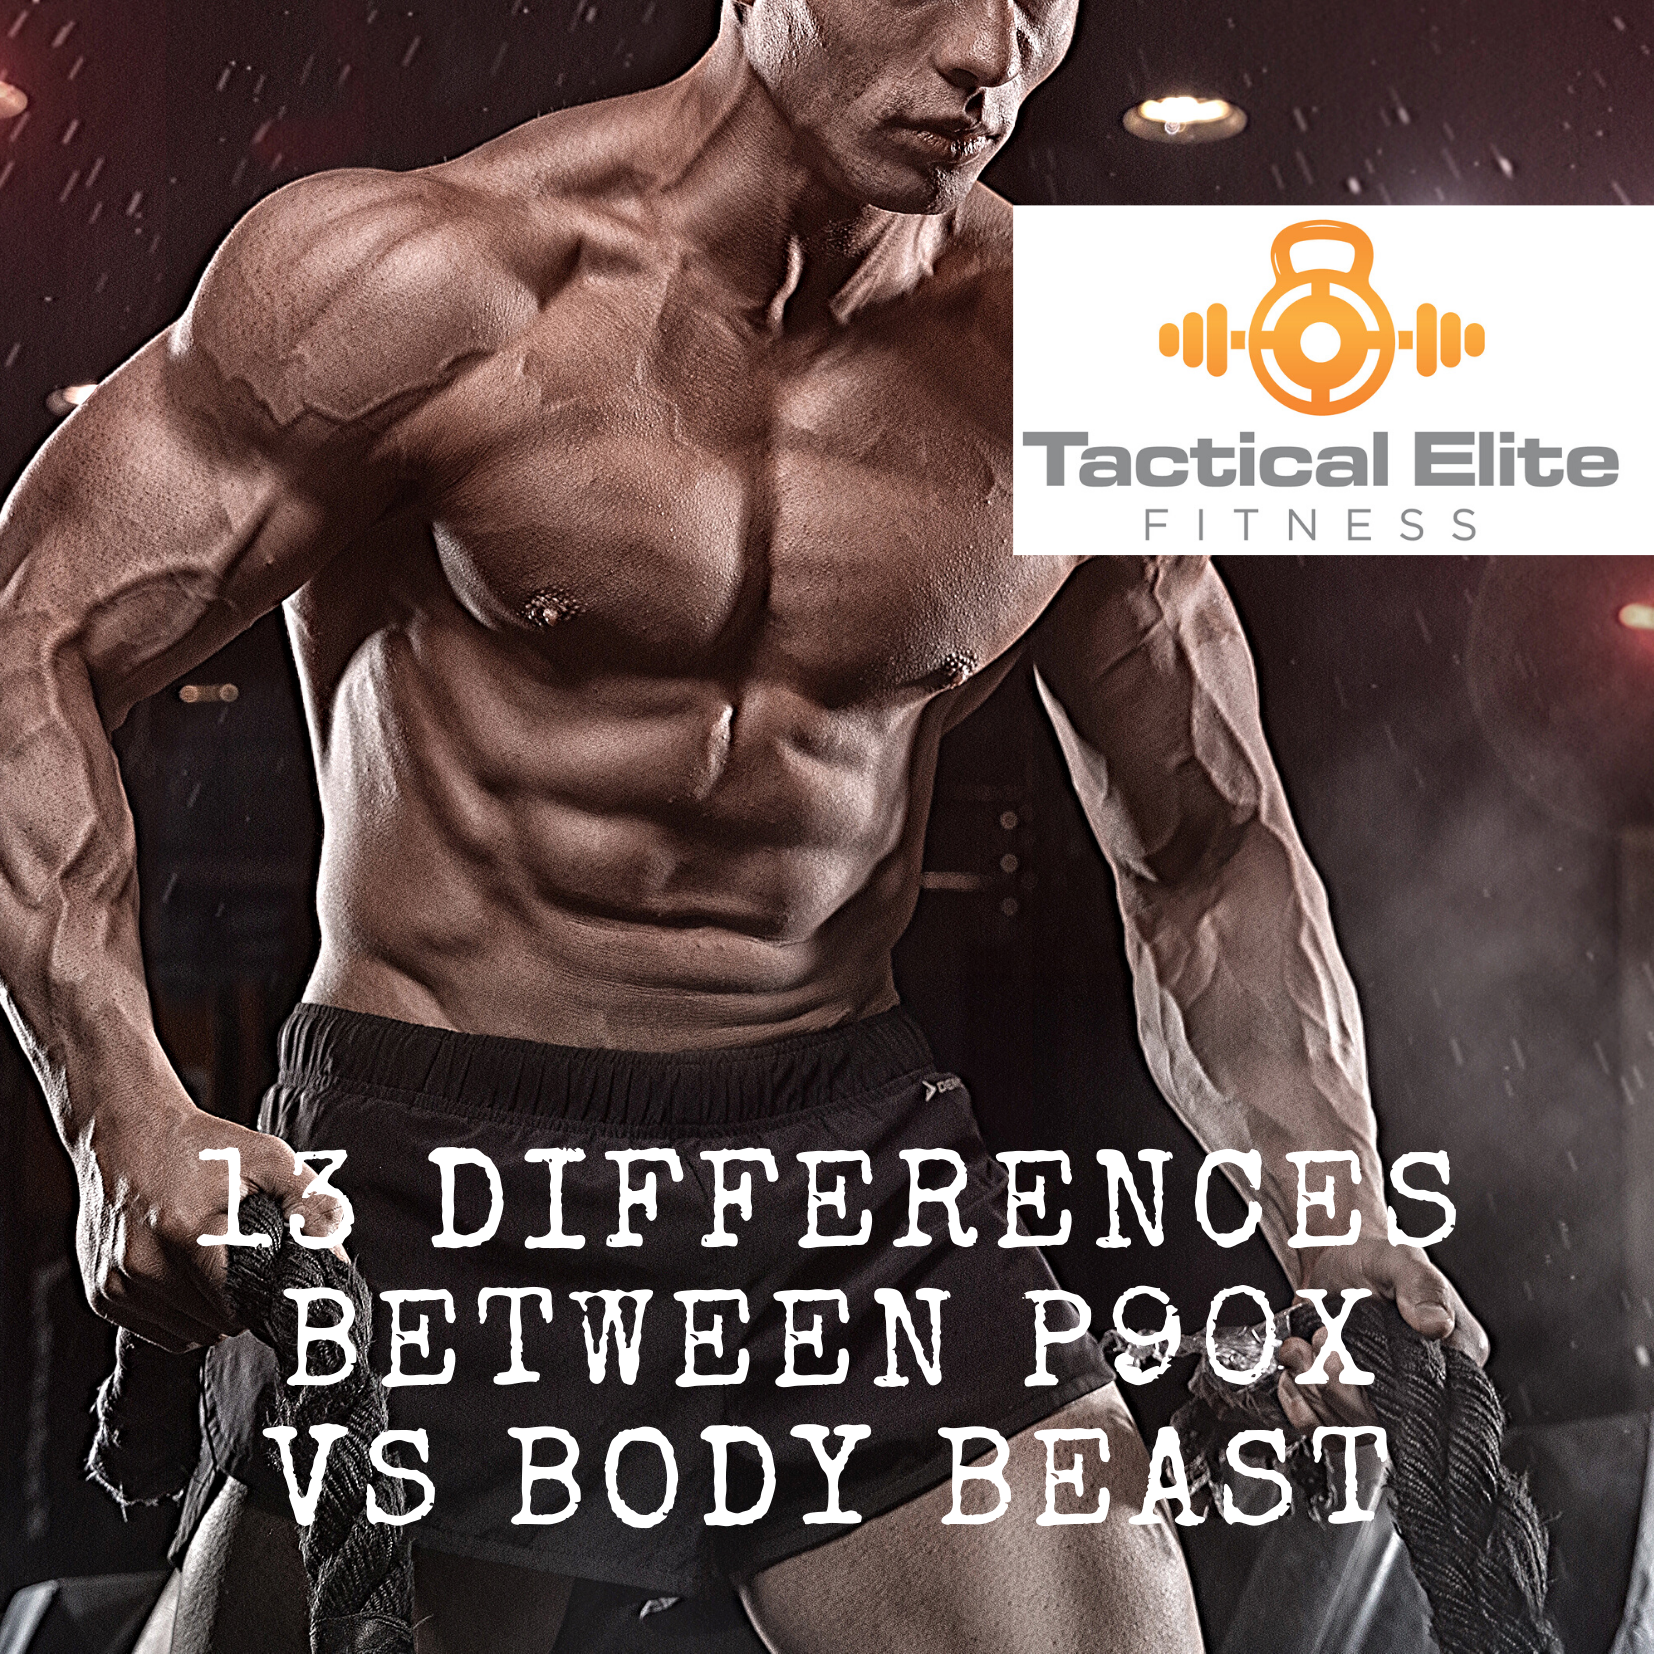 13 Differences Between P90x Vs Body Beast